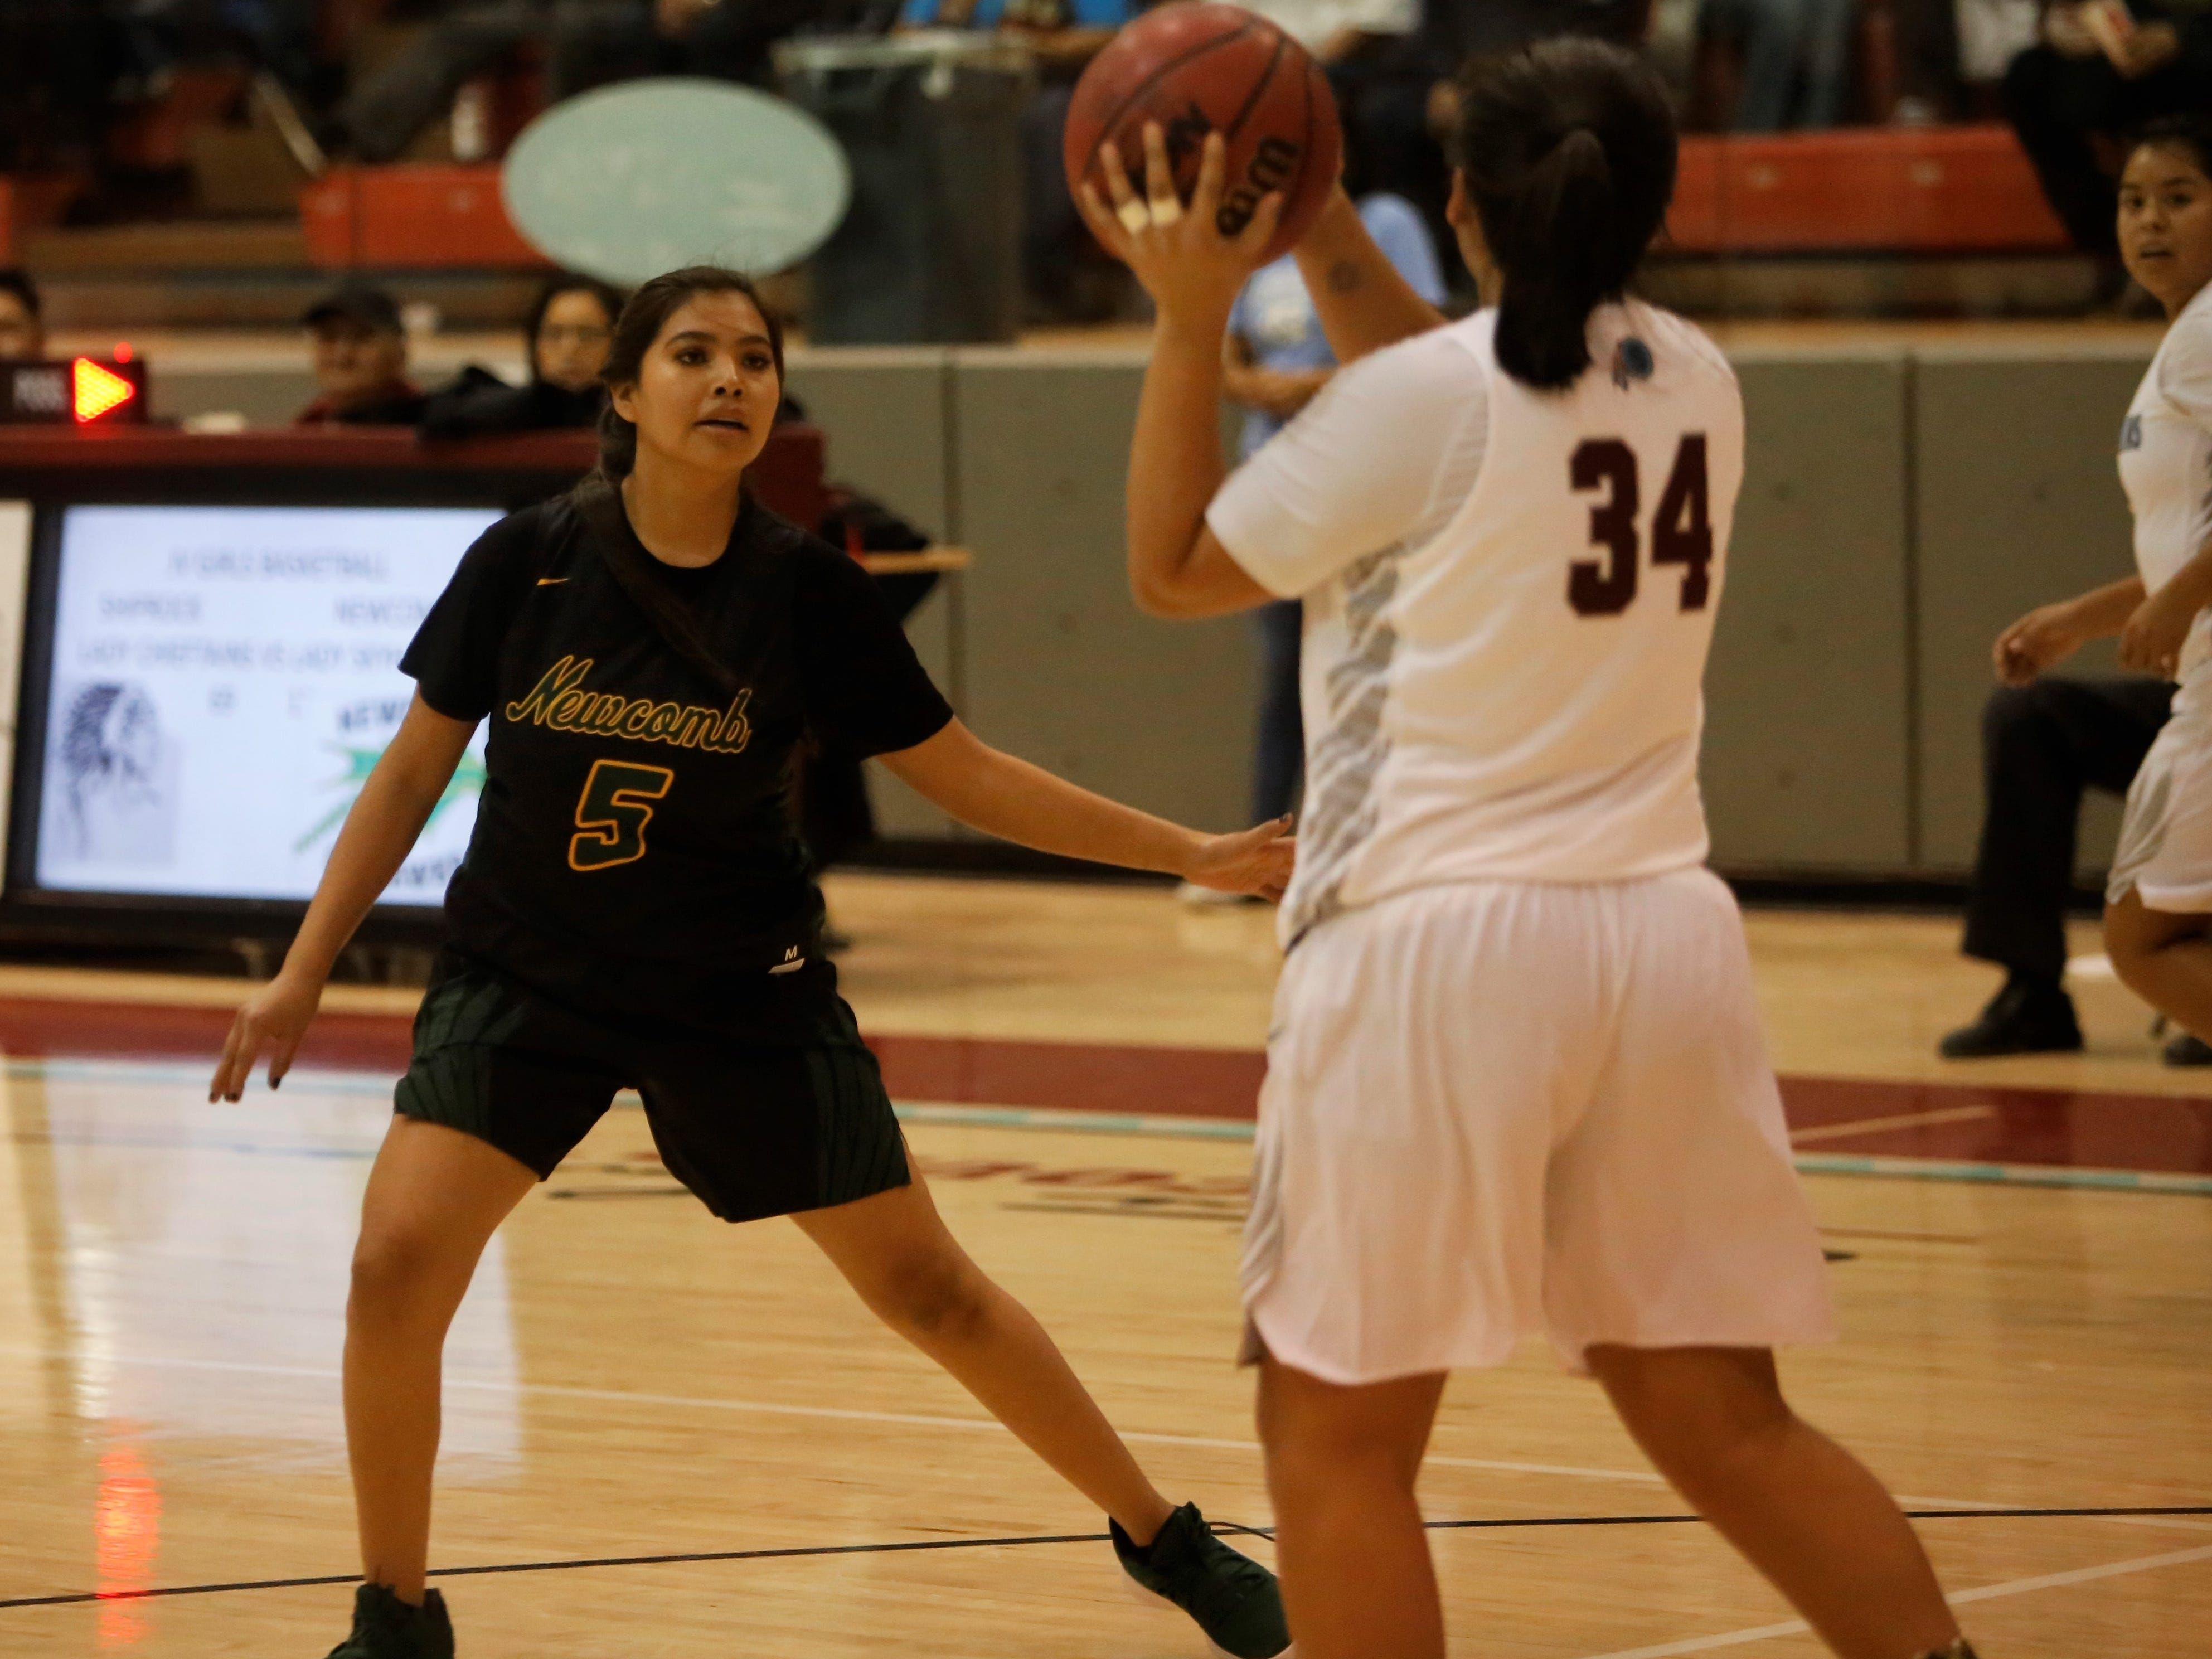 Newcomb's Autumn Manuelito looks to get a defensive stop against Shiprock's Tayya Dale during Thursday's game at the Chieftain Pit in Shiprock.